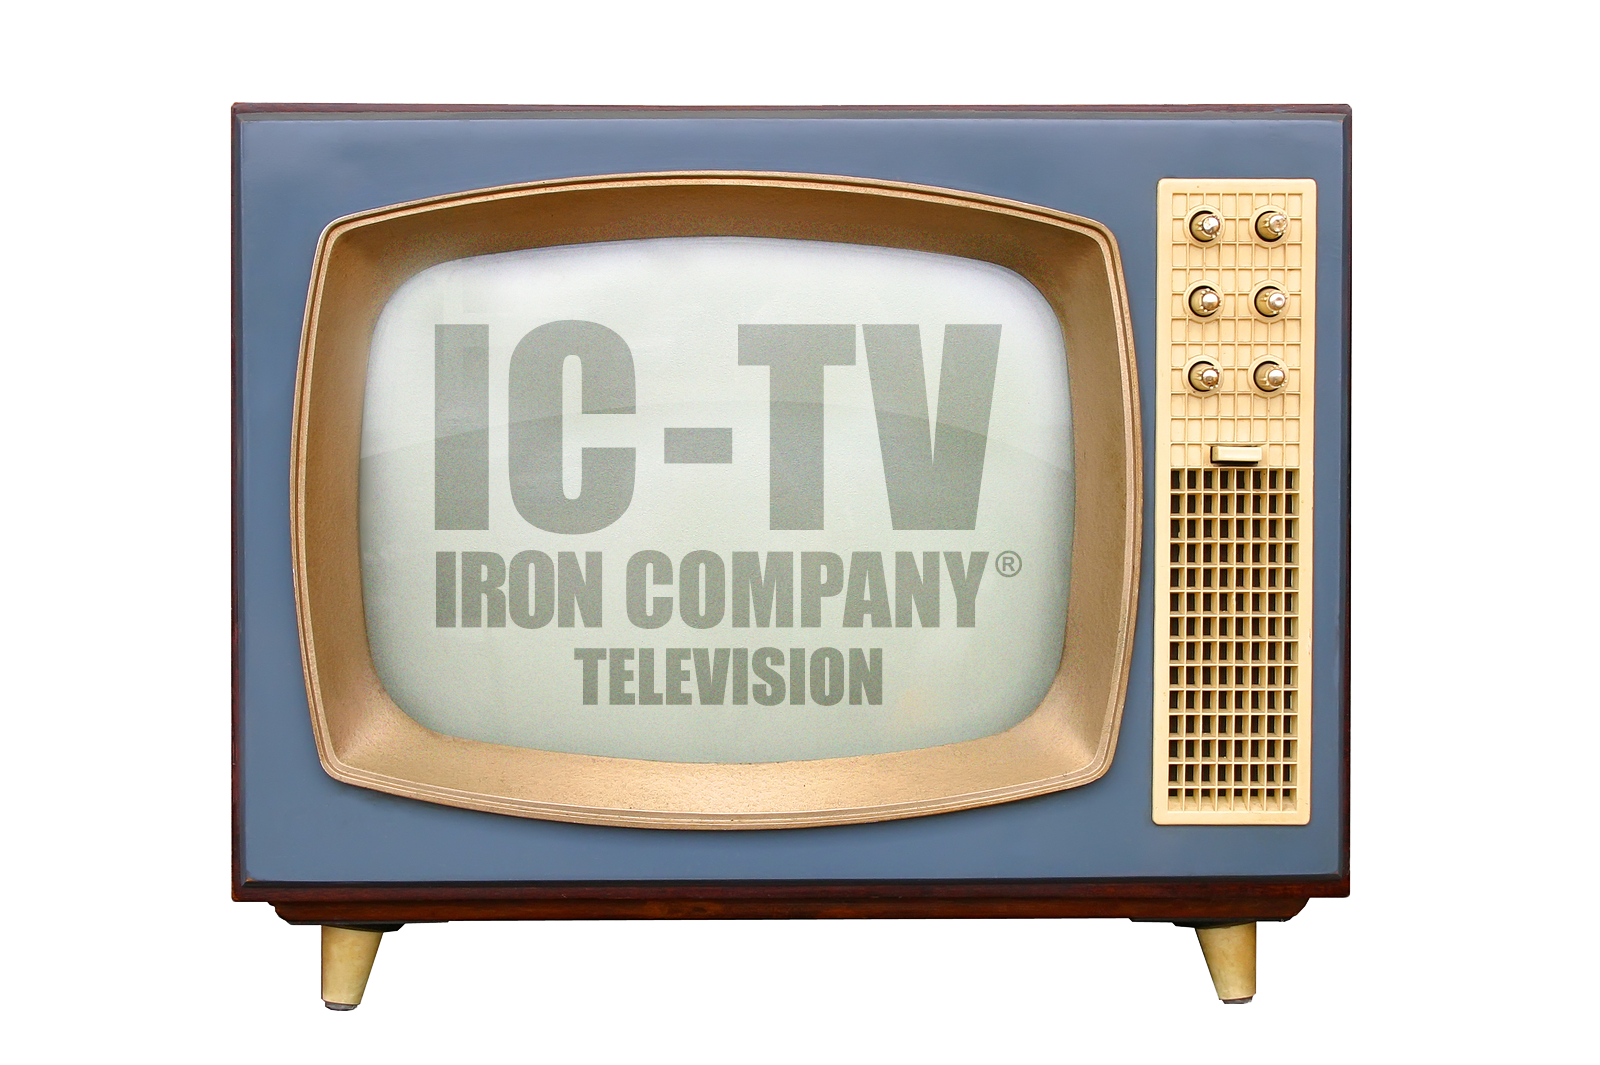 IC-TV Iron Company Television featuring RAW with Marty Gallagher Podcasts about weightlifting, powerlifting, bodybuilding, nutrition and cardio training